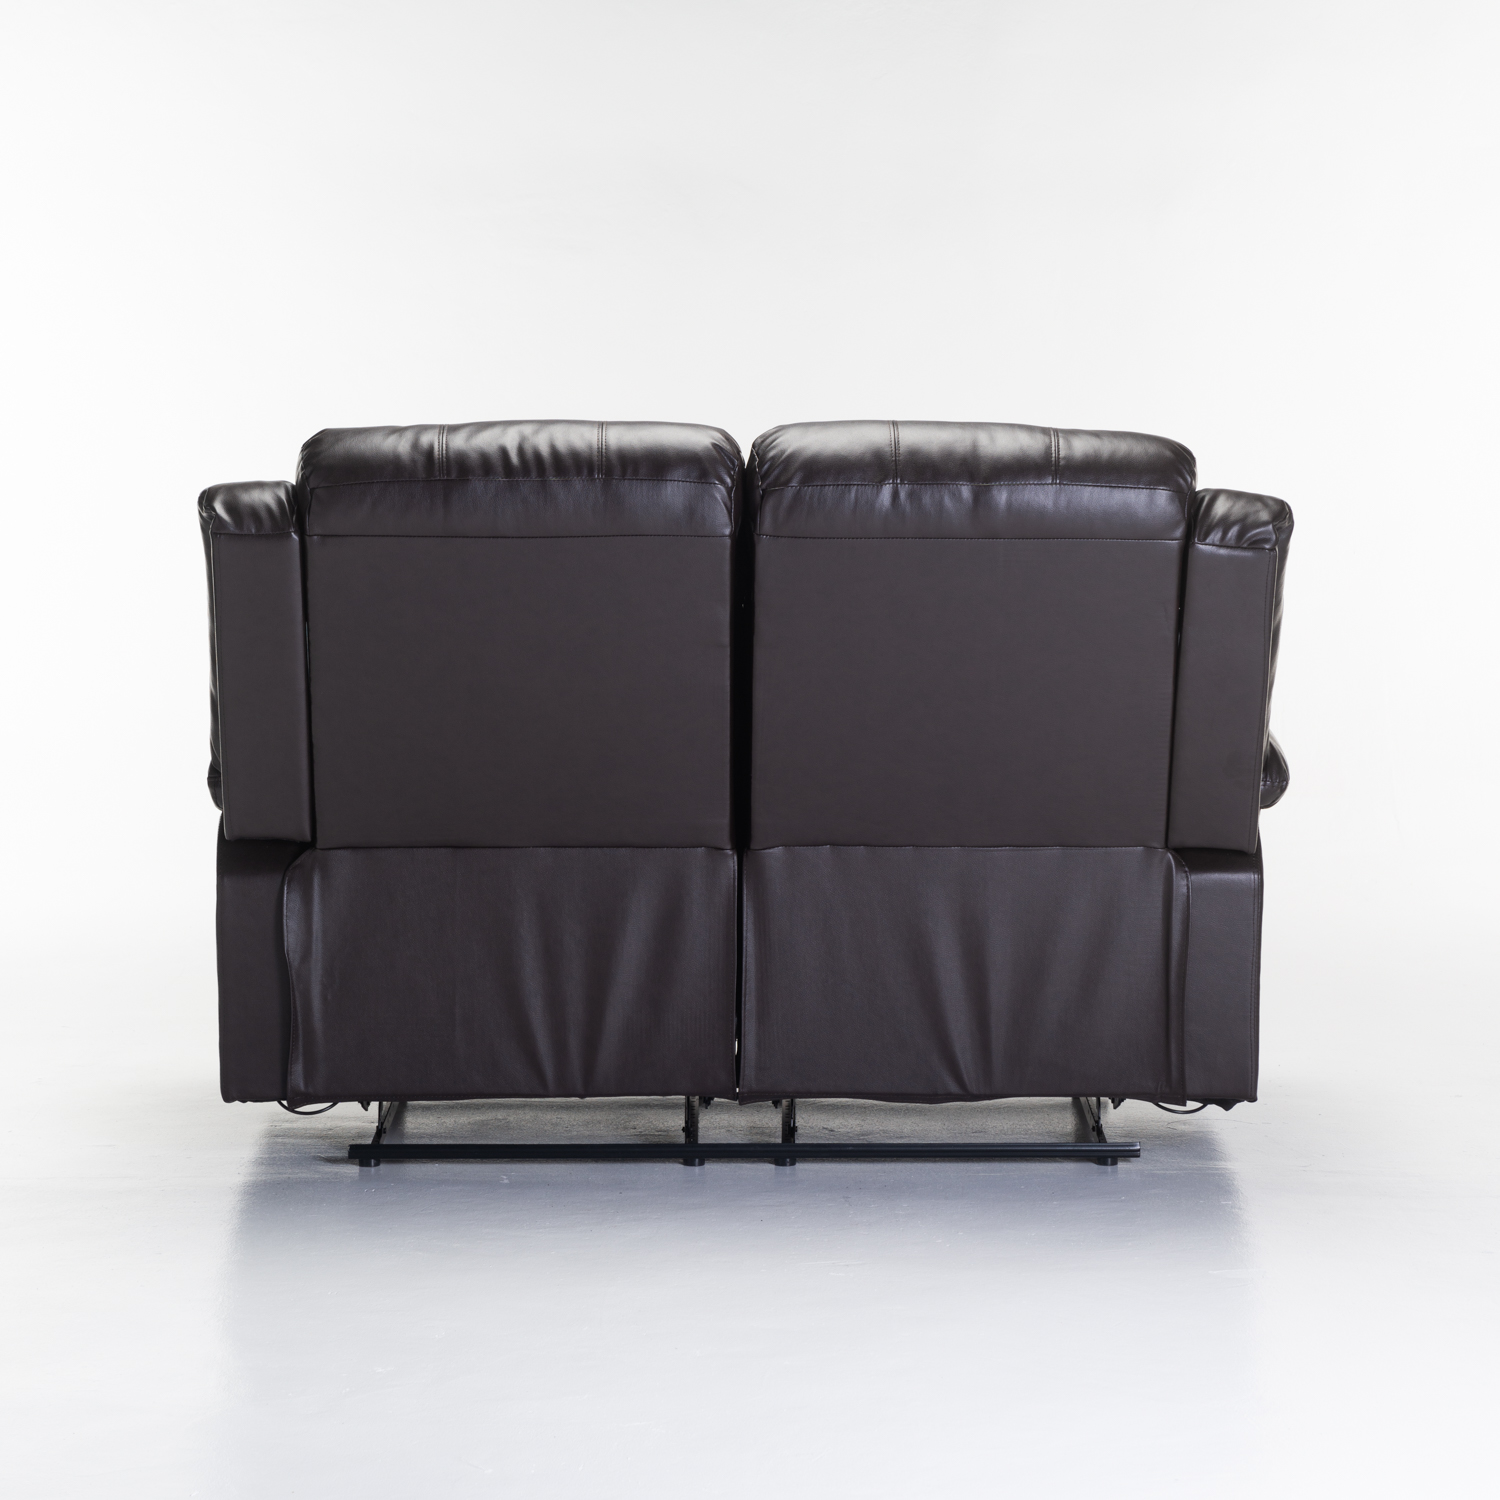 Yuzi 2 Seater Recliner